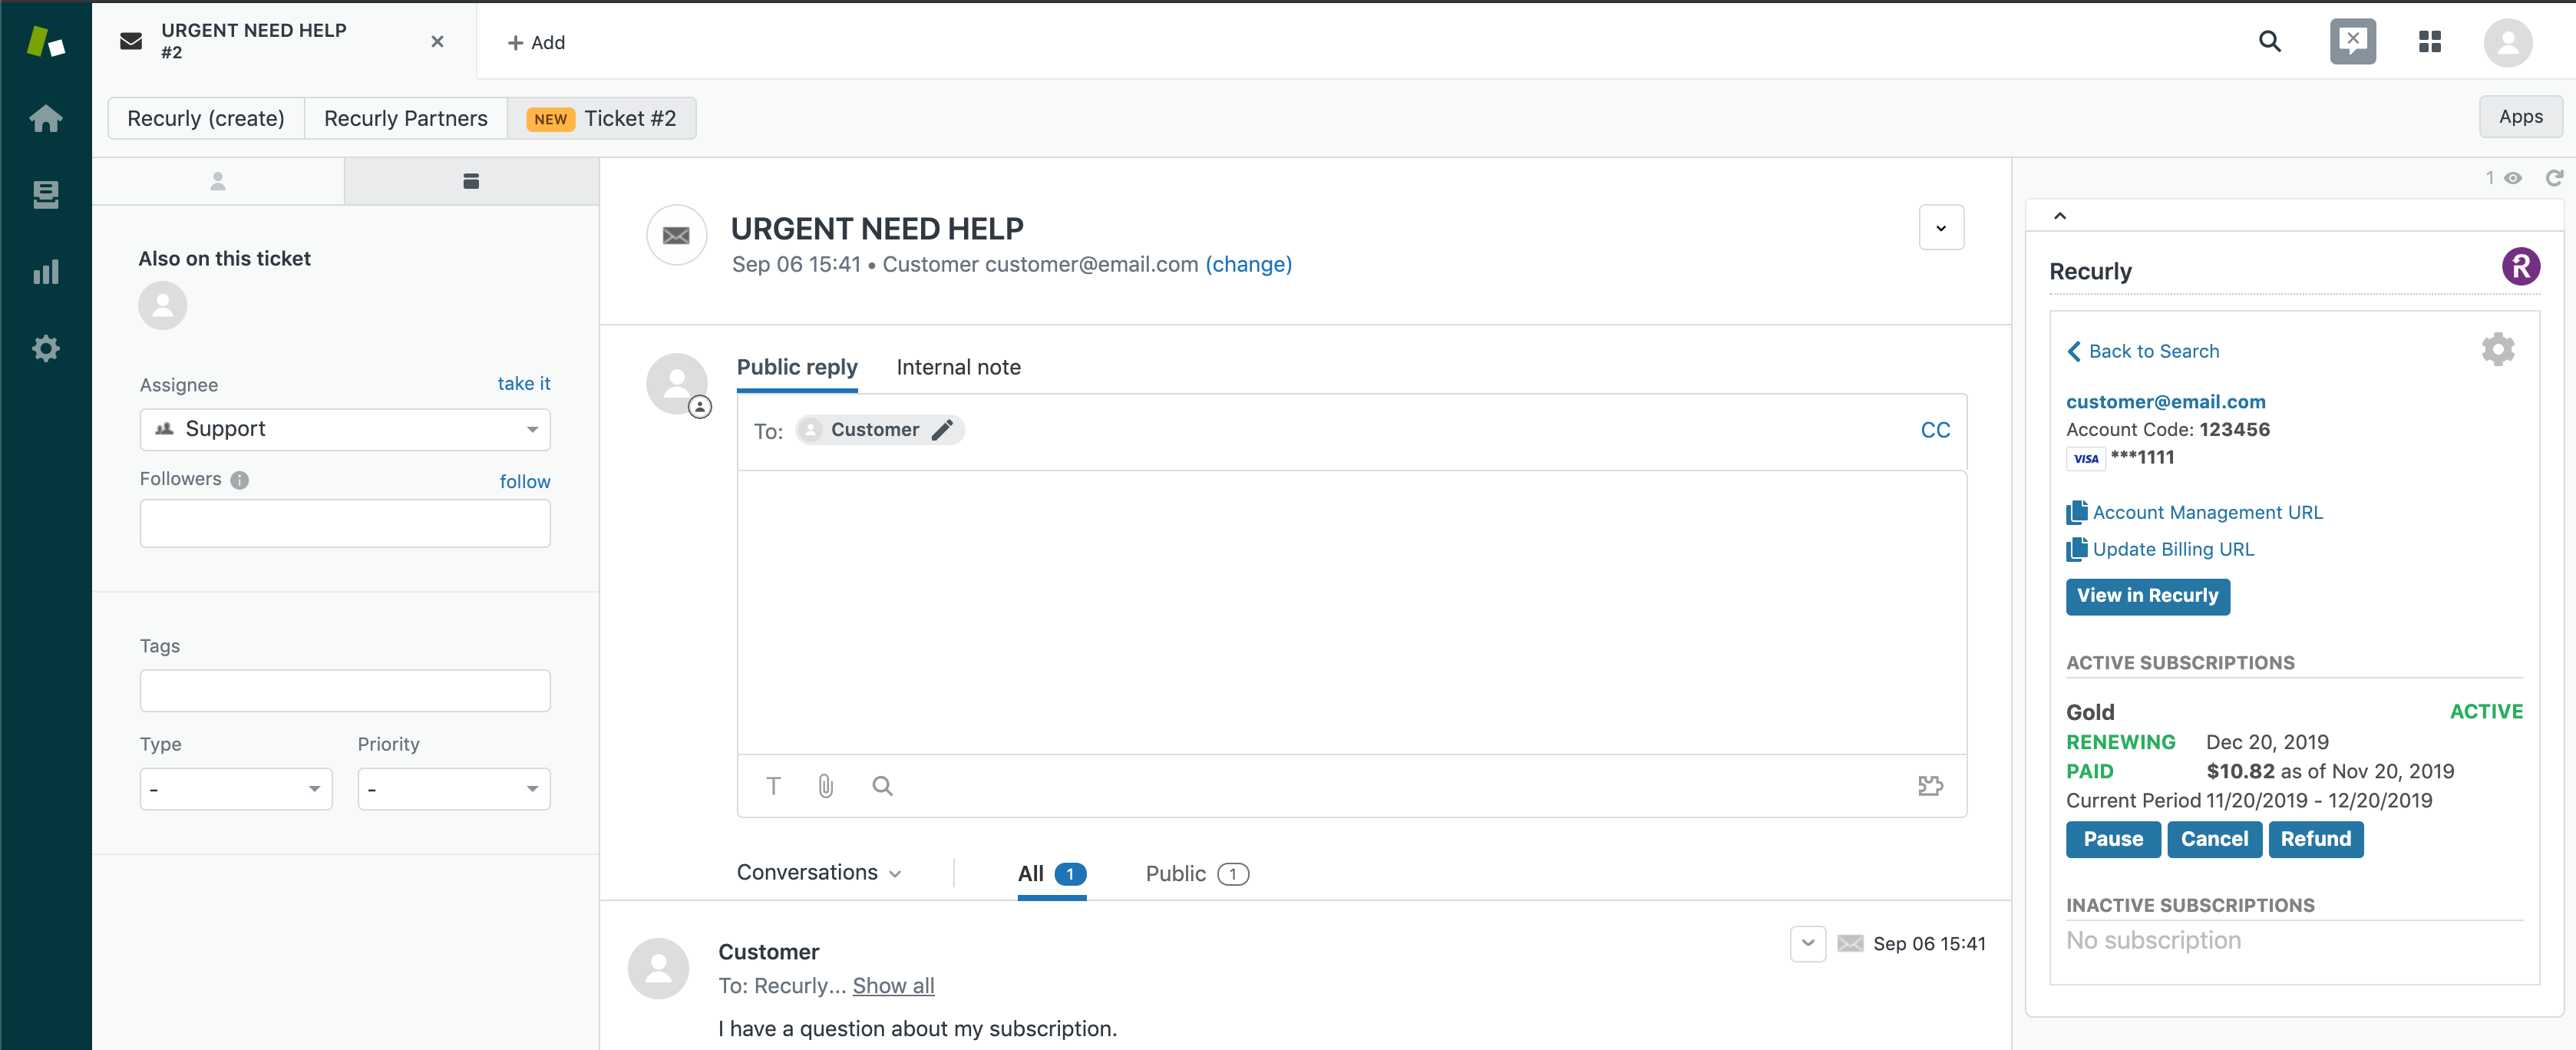 Interact with Recurly data directly in Zendesk and view the information your customers expect you to know